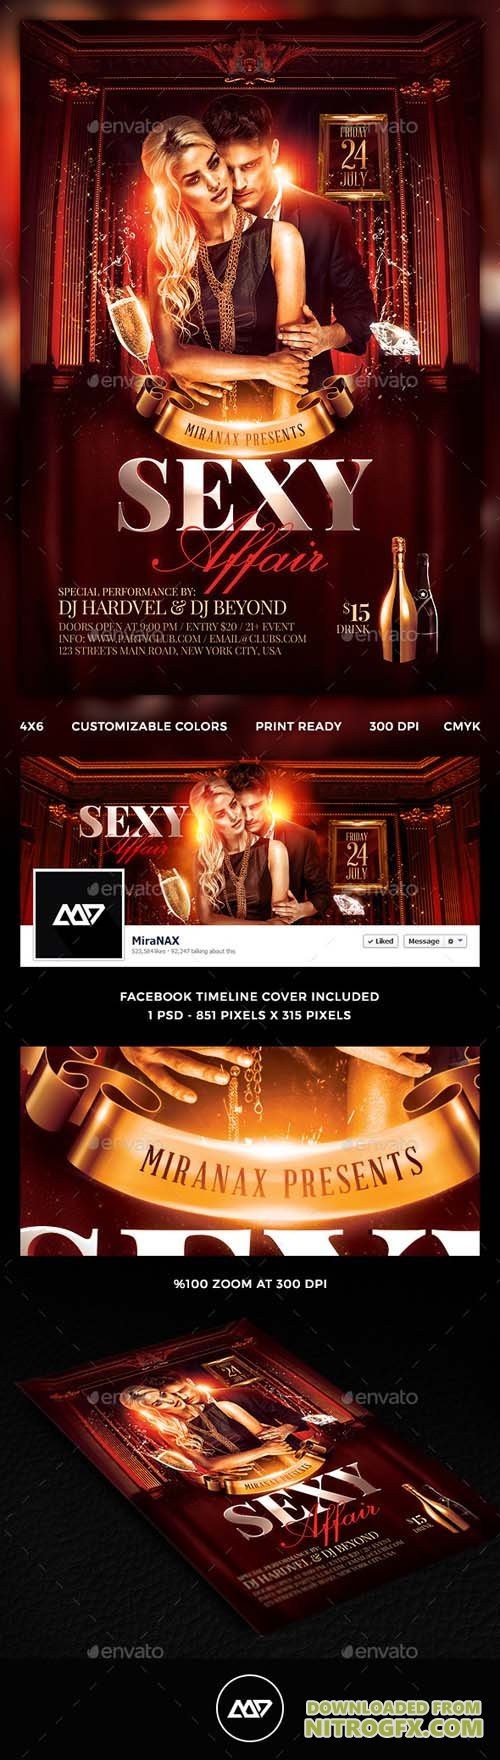 GR - Sexy Affair Flyer Template PSD 11710523